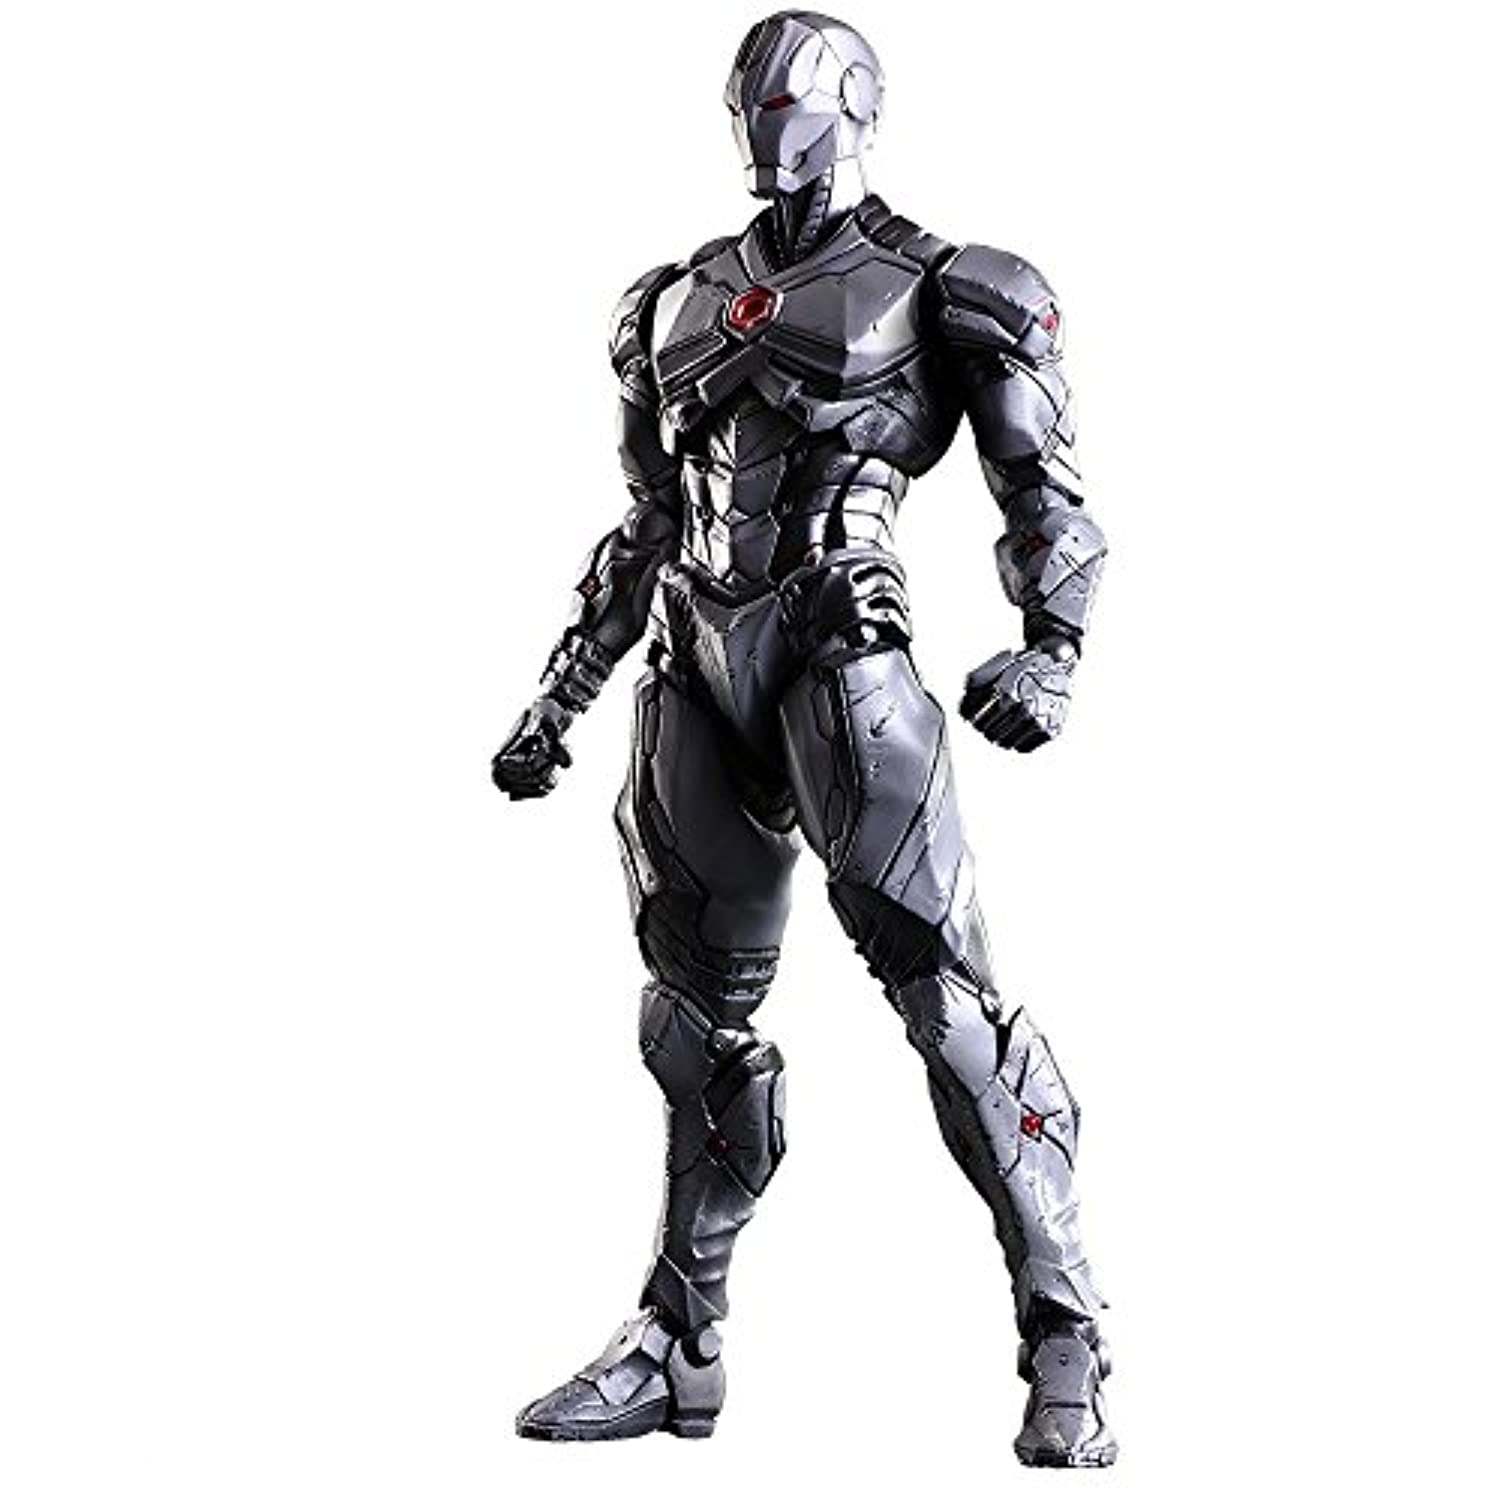 MARVEL UNIVERSE VARIANT PLAY ARTS改 アイアンマン LIMITED COLOR VER. PVC製 塗装済み可動フィギュア